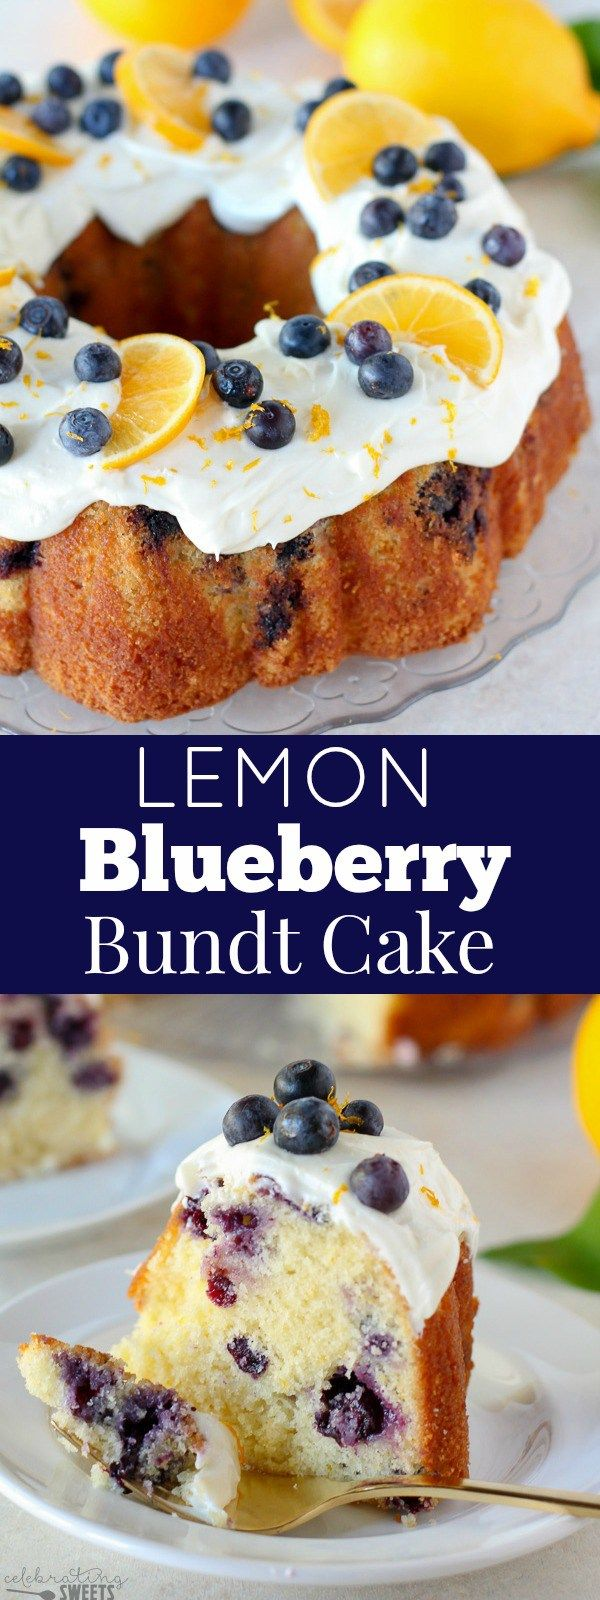 Lemon Blueberry Bundt Cake A Moist And Tender Lemon Buttermilk Bundt Cake Filled With Fresh Blueberries And Topped With Cream Cheese Frost With Images Blueberry Bundt Cake